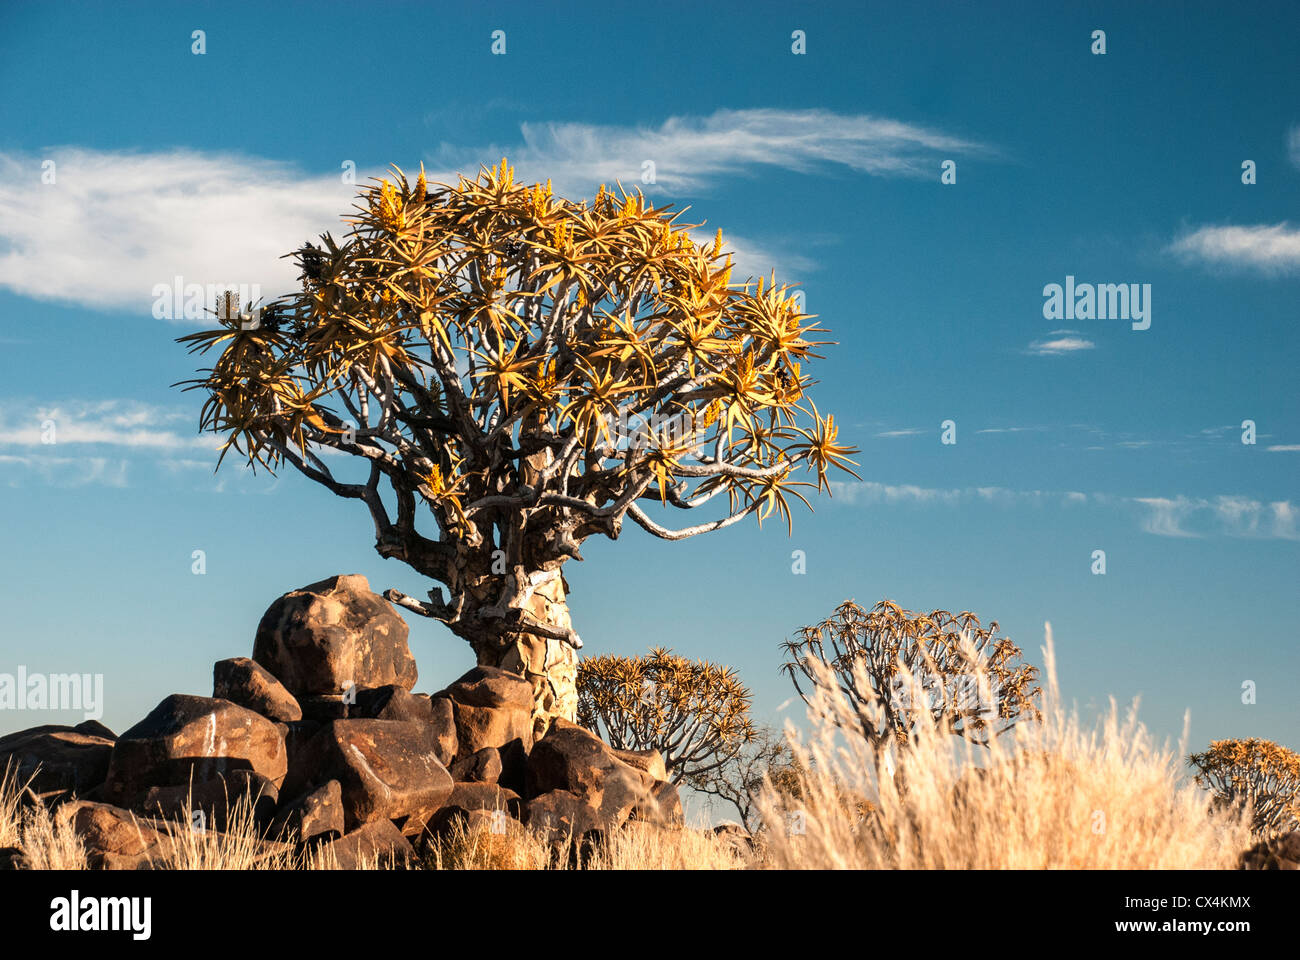 Quiver trees, Kokerboom, Aloe dichotoma, Quiver tree forest, Farm Gariganus, Keetmannshoop, Namibia, Africa - Stock Image